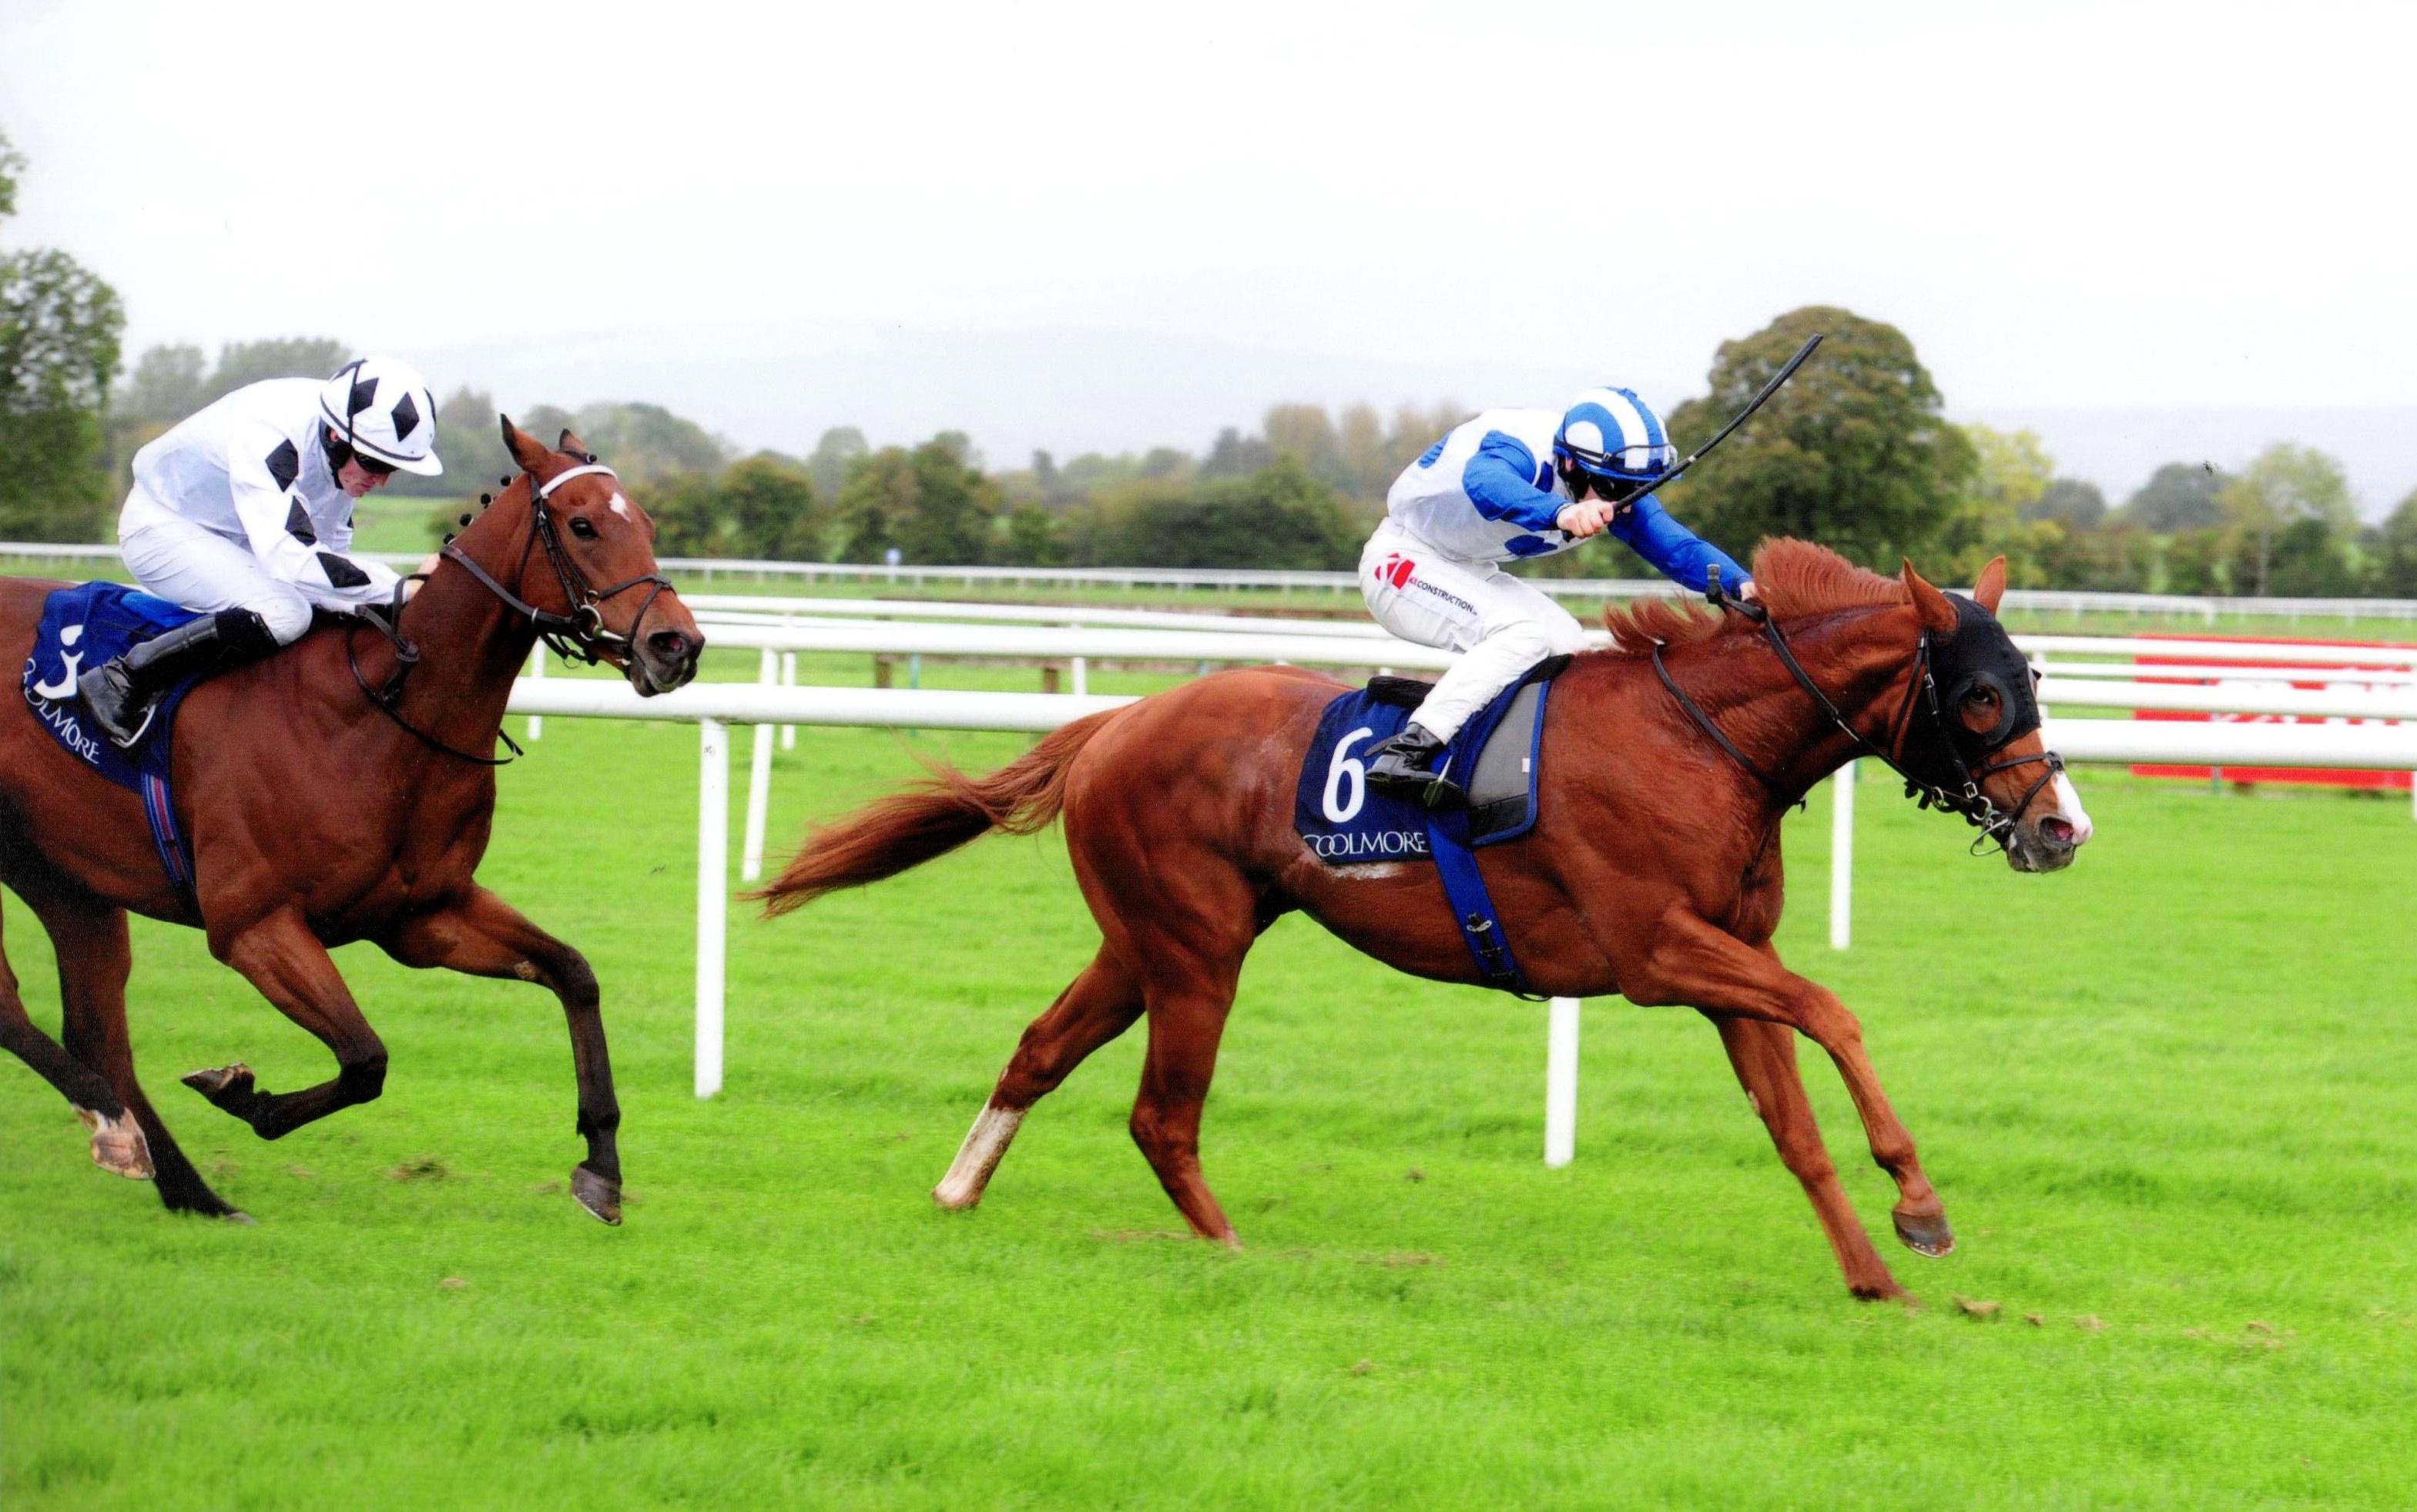 PSYCHEDELIC FUNK earns Group 3 success at Tipperary 1st October 2017